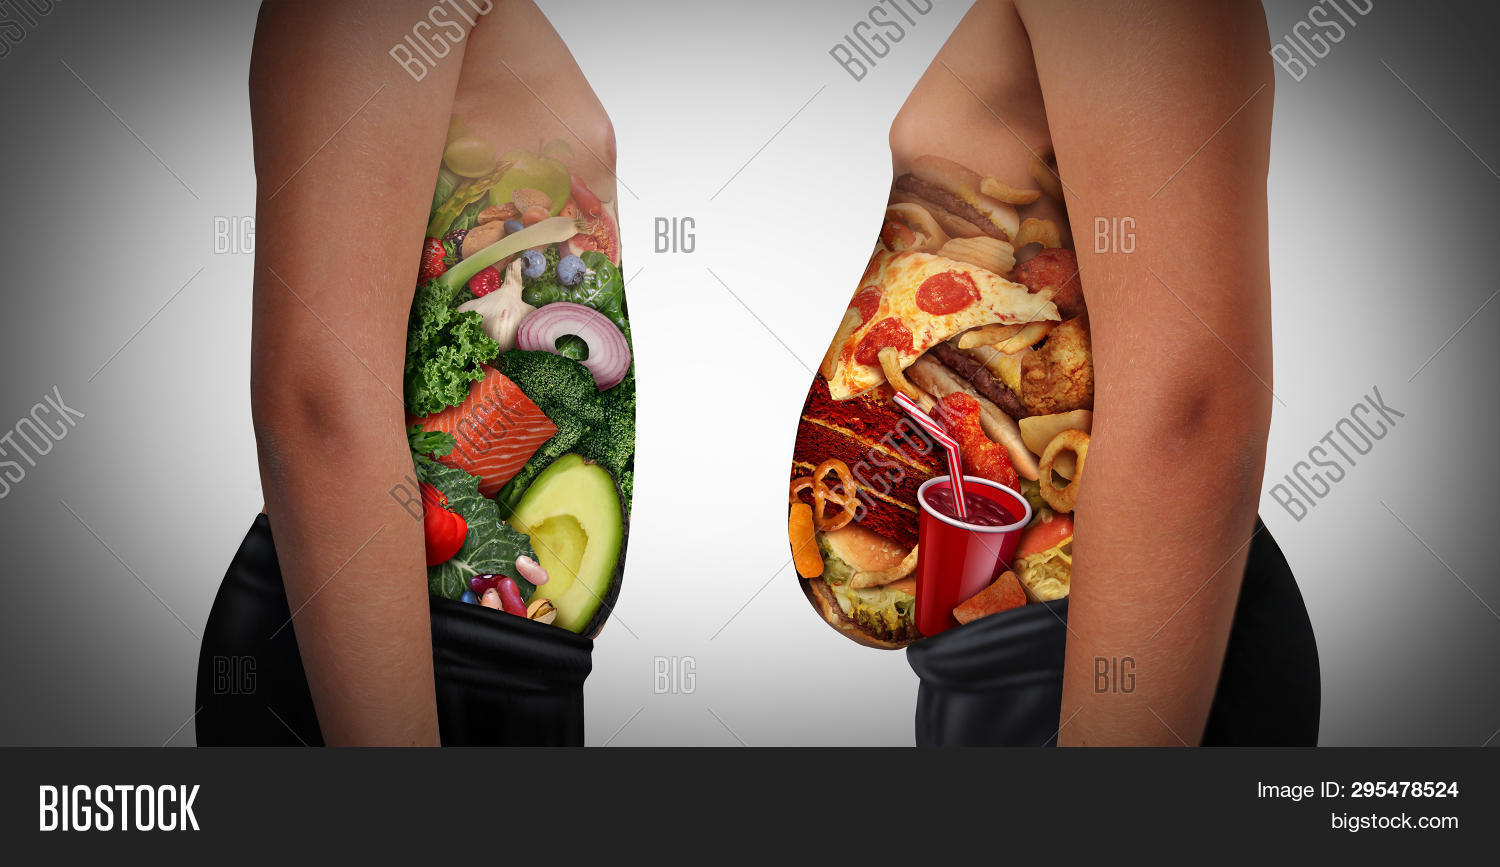 3D,burger,cheeseburger,child,childhood,choice,compare,comparison,contrast,diabetes,diabetic,diet,drink,eat,eating,education,elements,fast,fat,food,fresh,fruit,greasy,habits,healthy,hunger,illustration,junk,juvenile,kid,medical,medicine,morbidly,nutrition,obese,obesity,opposite,restaurant,snack,snacking,soda,soft,student,unhealthy,vegetables,young